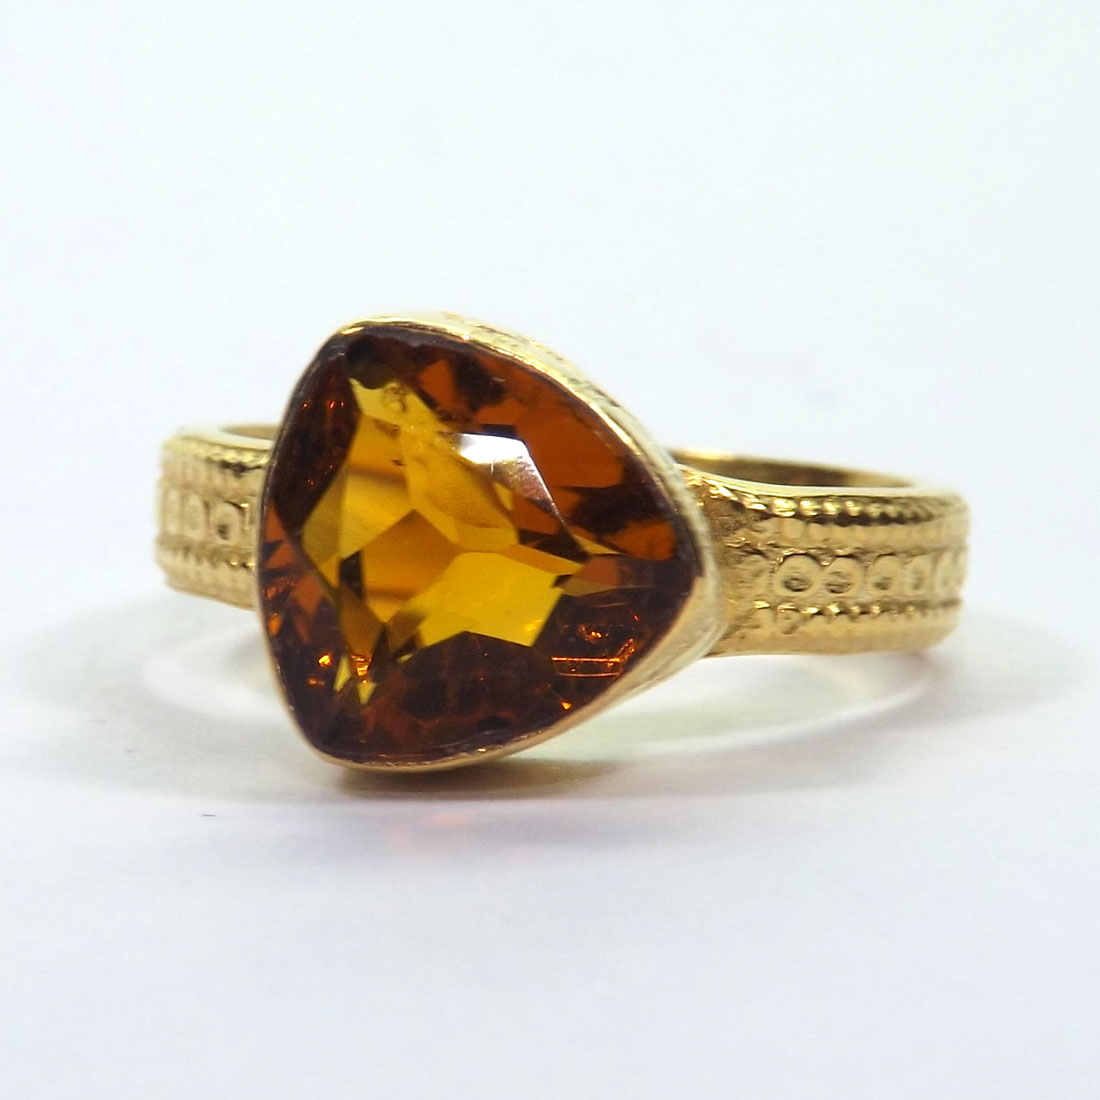 Gemstone Made in Brass Citrine Hydro Glass Ring A - HBR999 Gemstone Made in Brass Citrine Hydro Glass Ring